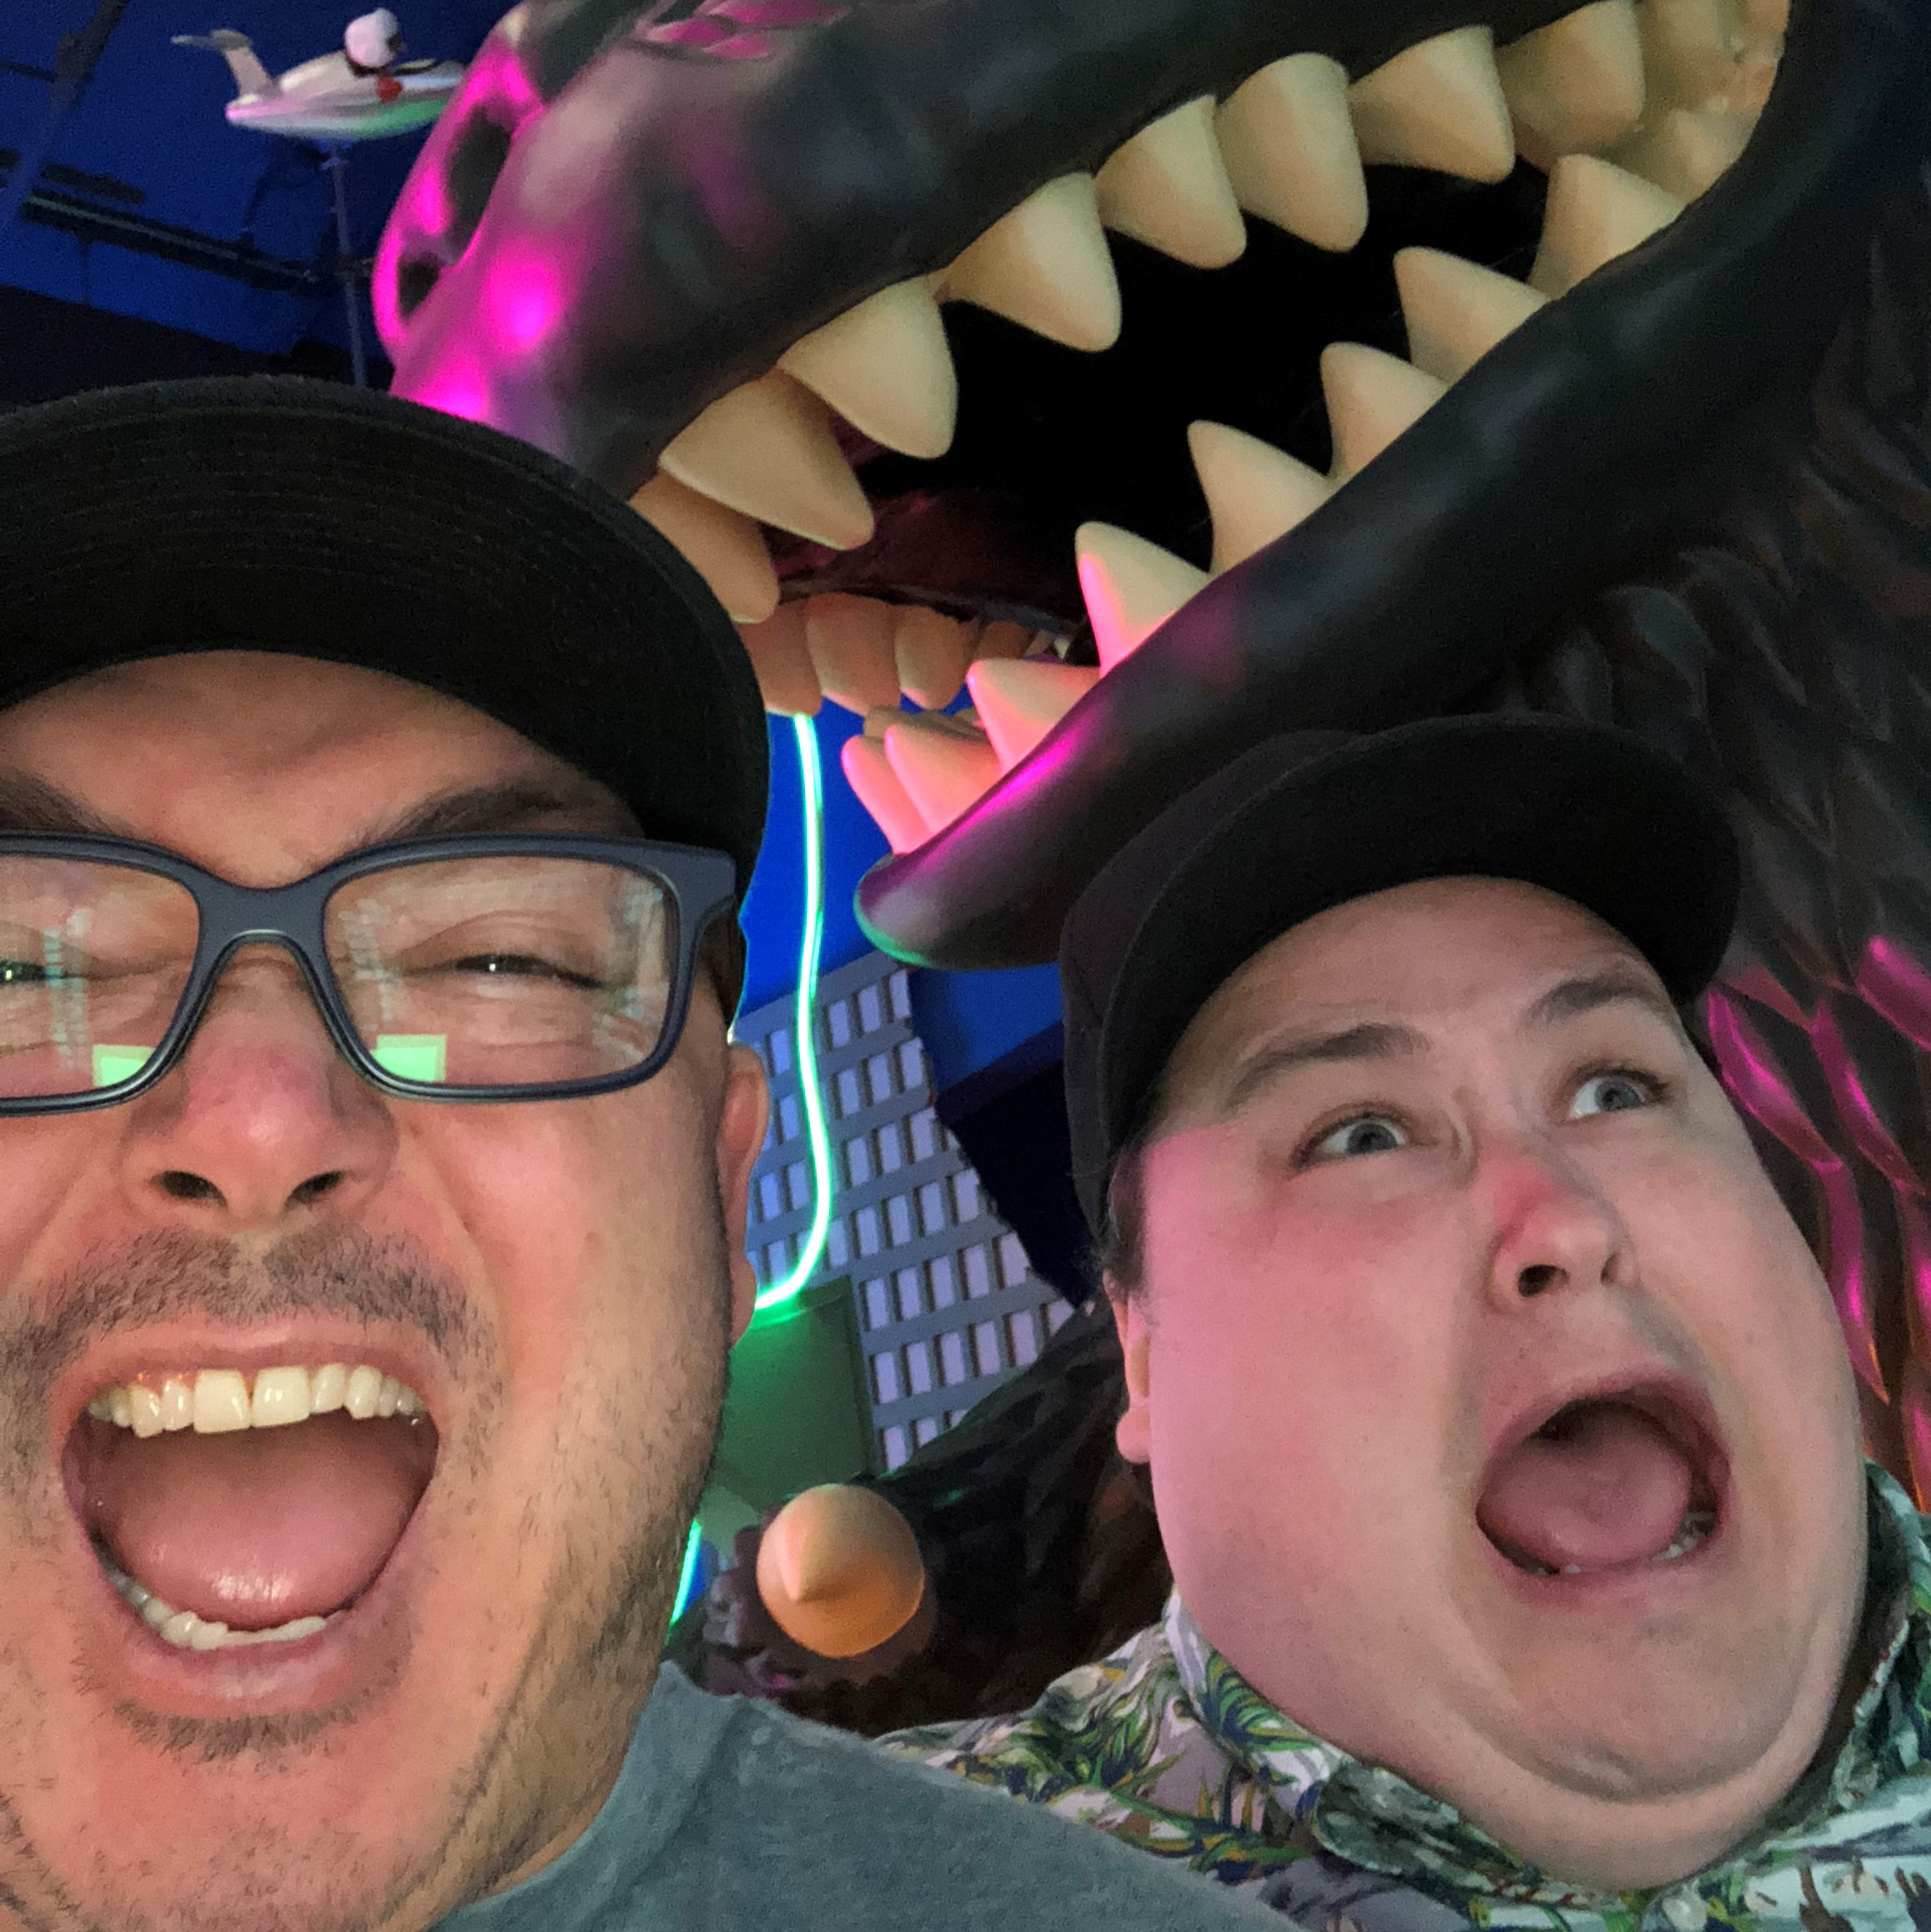 two terrified mens faces who apear to be fleaing from a Godzilla statue towering above them